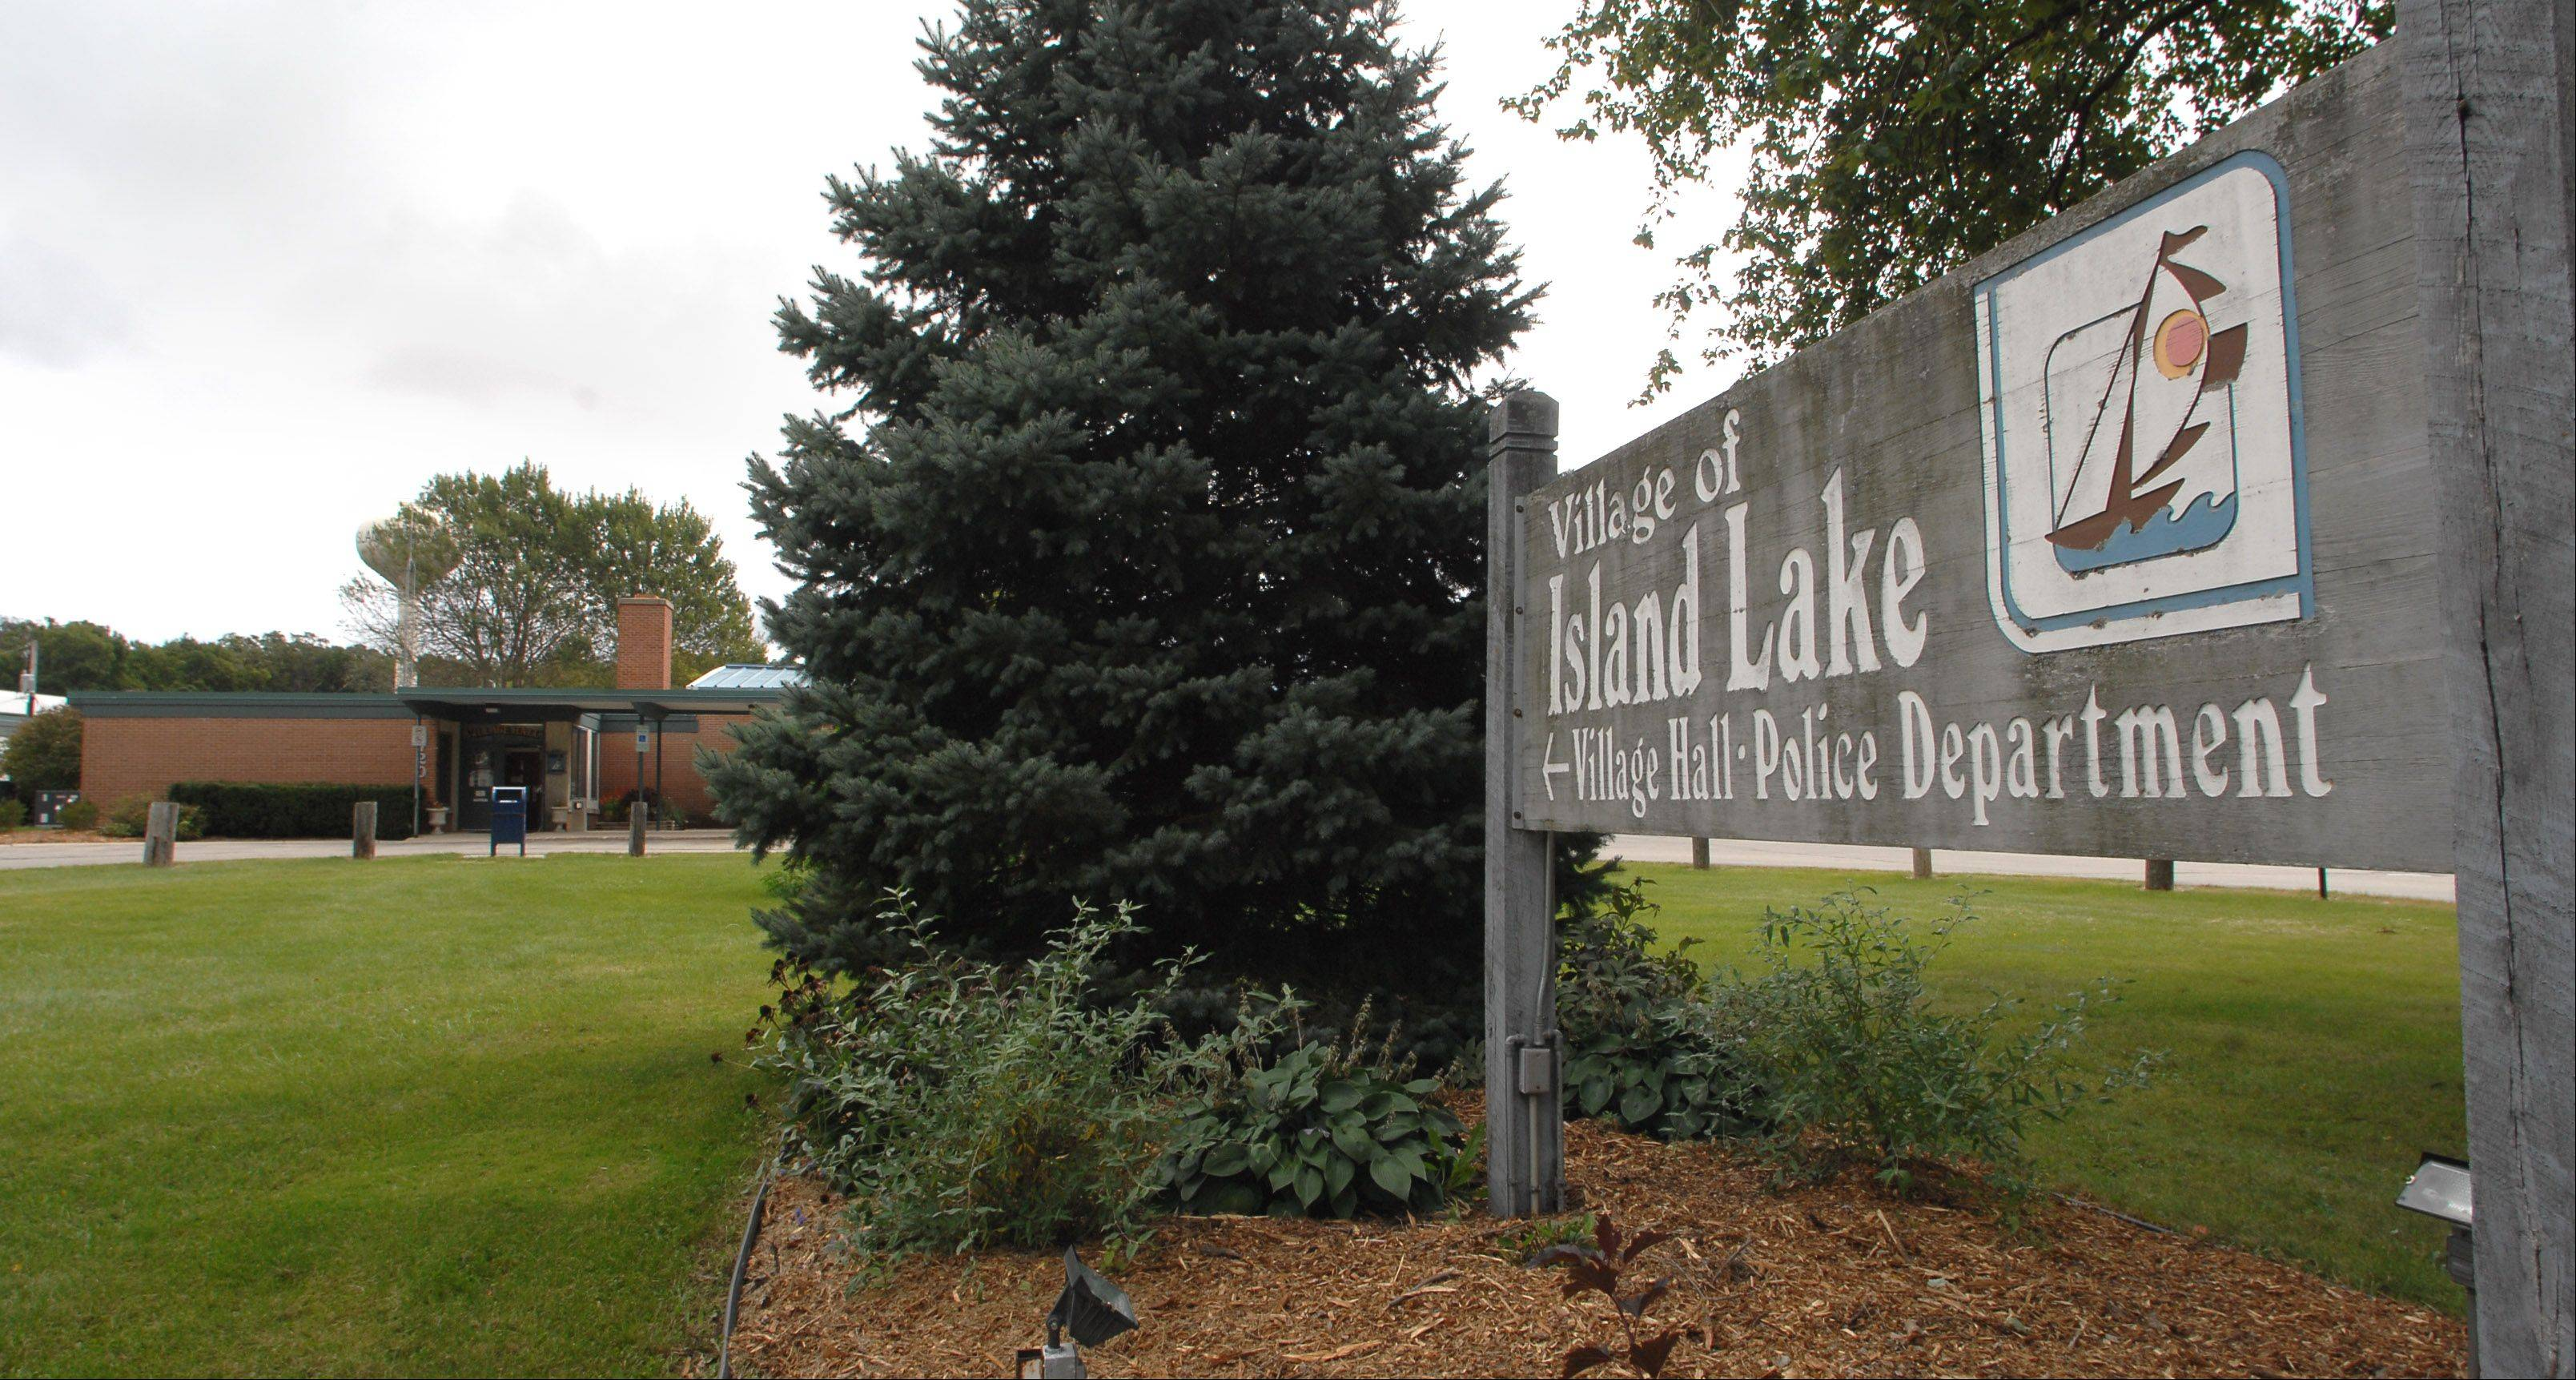 Island Lake voters will be asked in November if officials should undertake a multimillion-dollar building project. A new village hall